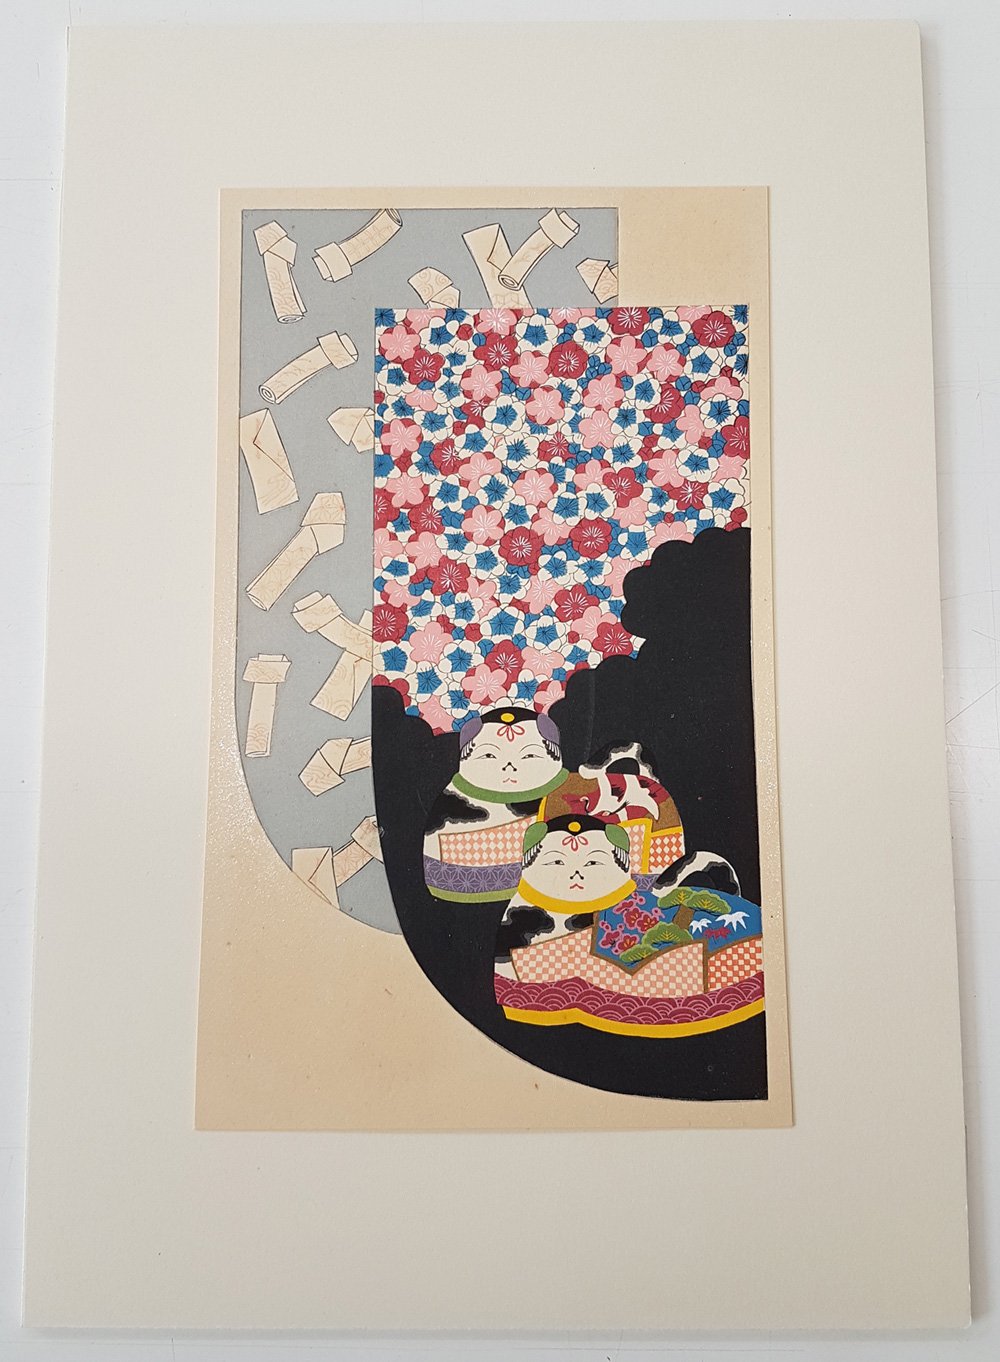 Print of two kimono designs one with white motifs the other with flowers and two colourful cat like creatures.